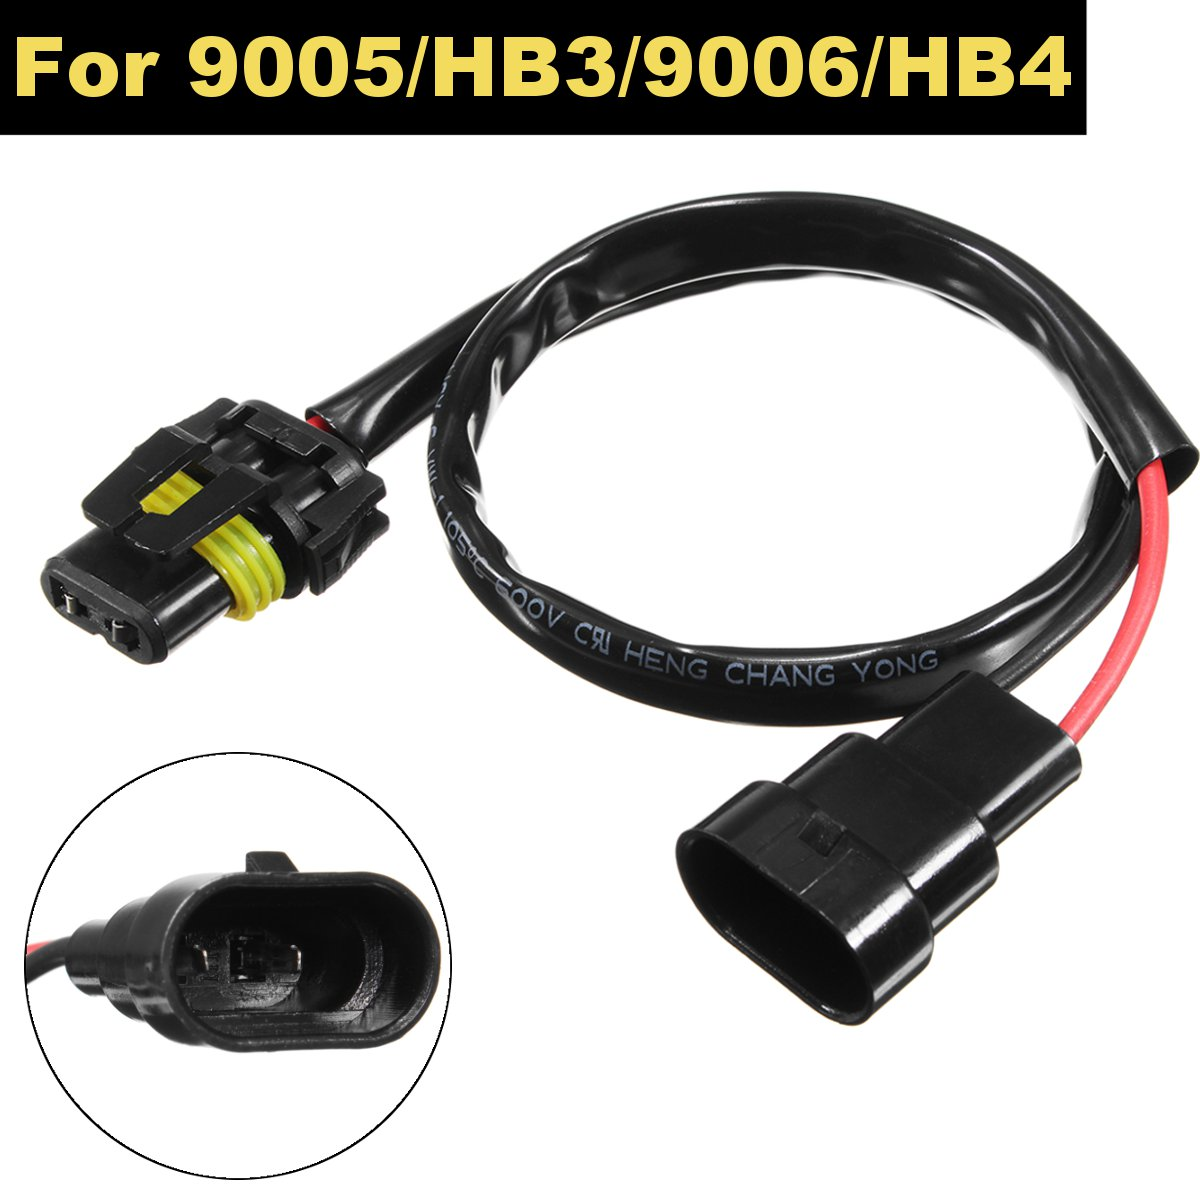 HB4 Wire Harness HID Xenon Power Cable Connector Ballast Socket Wiring Adapter Conversion